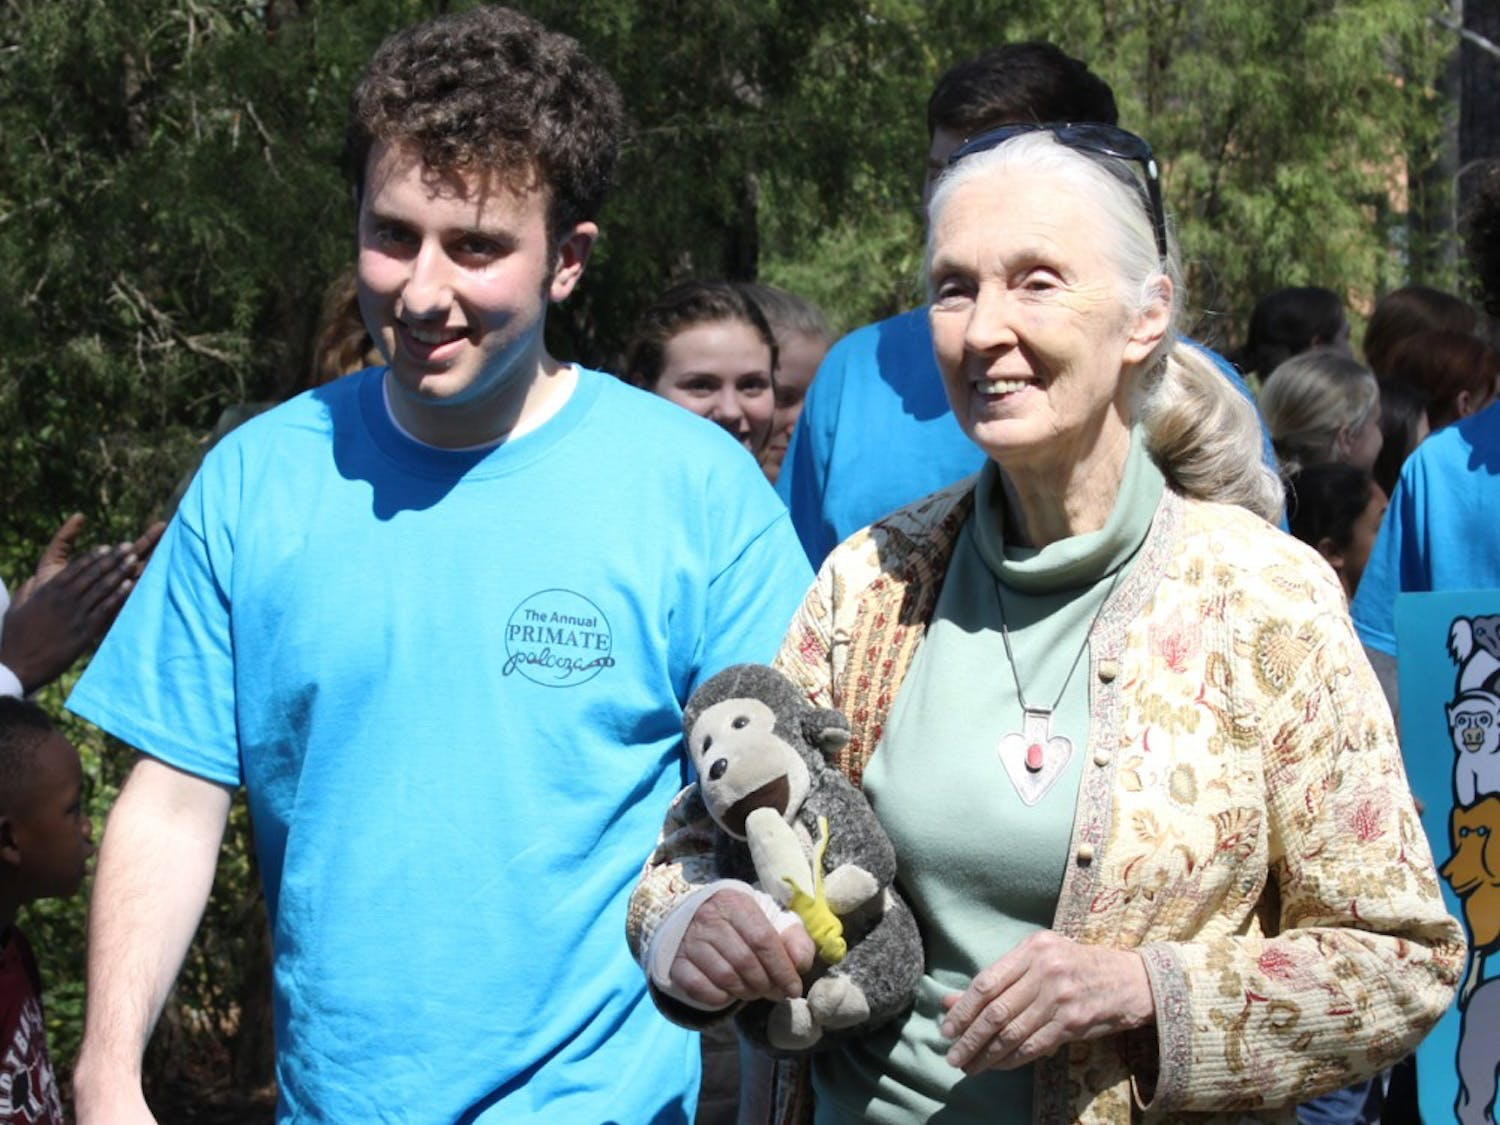 Jane Goodall leads the Primate Peace Parade with Aaron Sandel, a Duke student and one of the UNC/Duke Roots and Shoots founders.